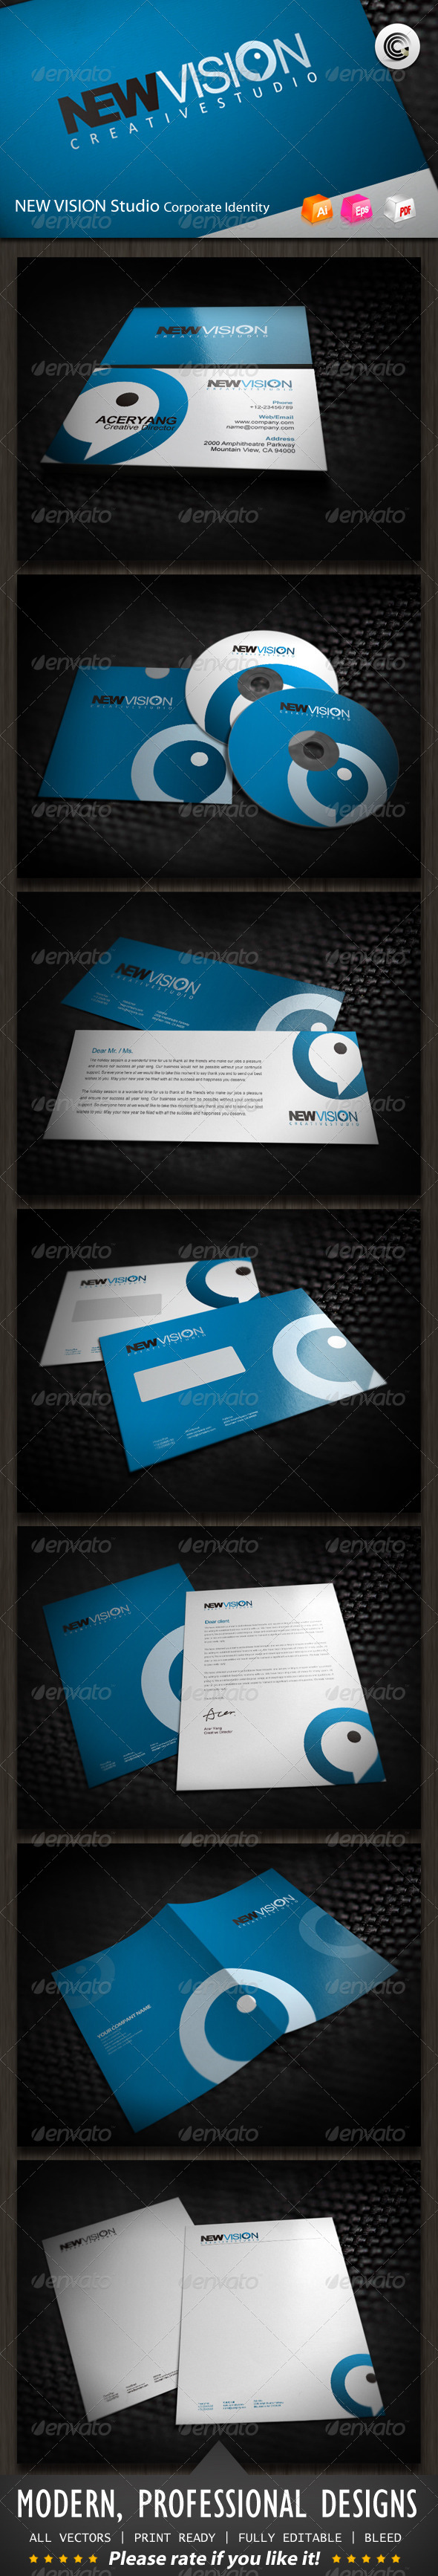 New Vision Studio Corporate Identity - Stationery Print Templates